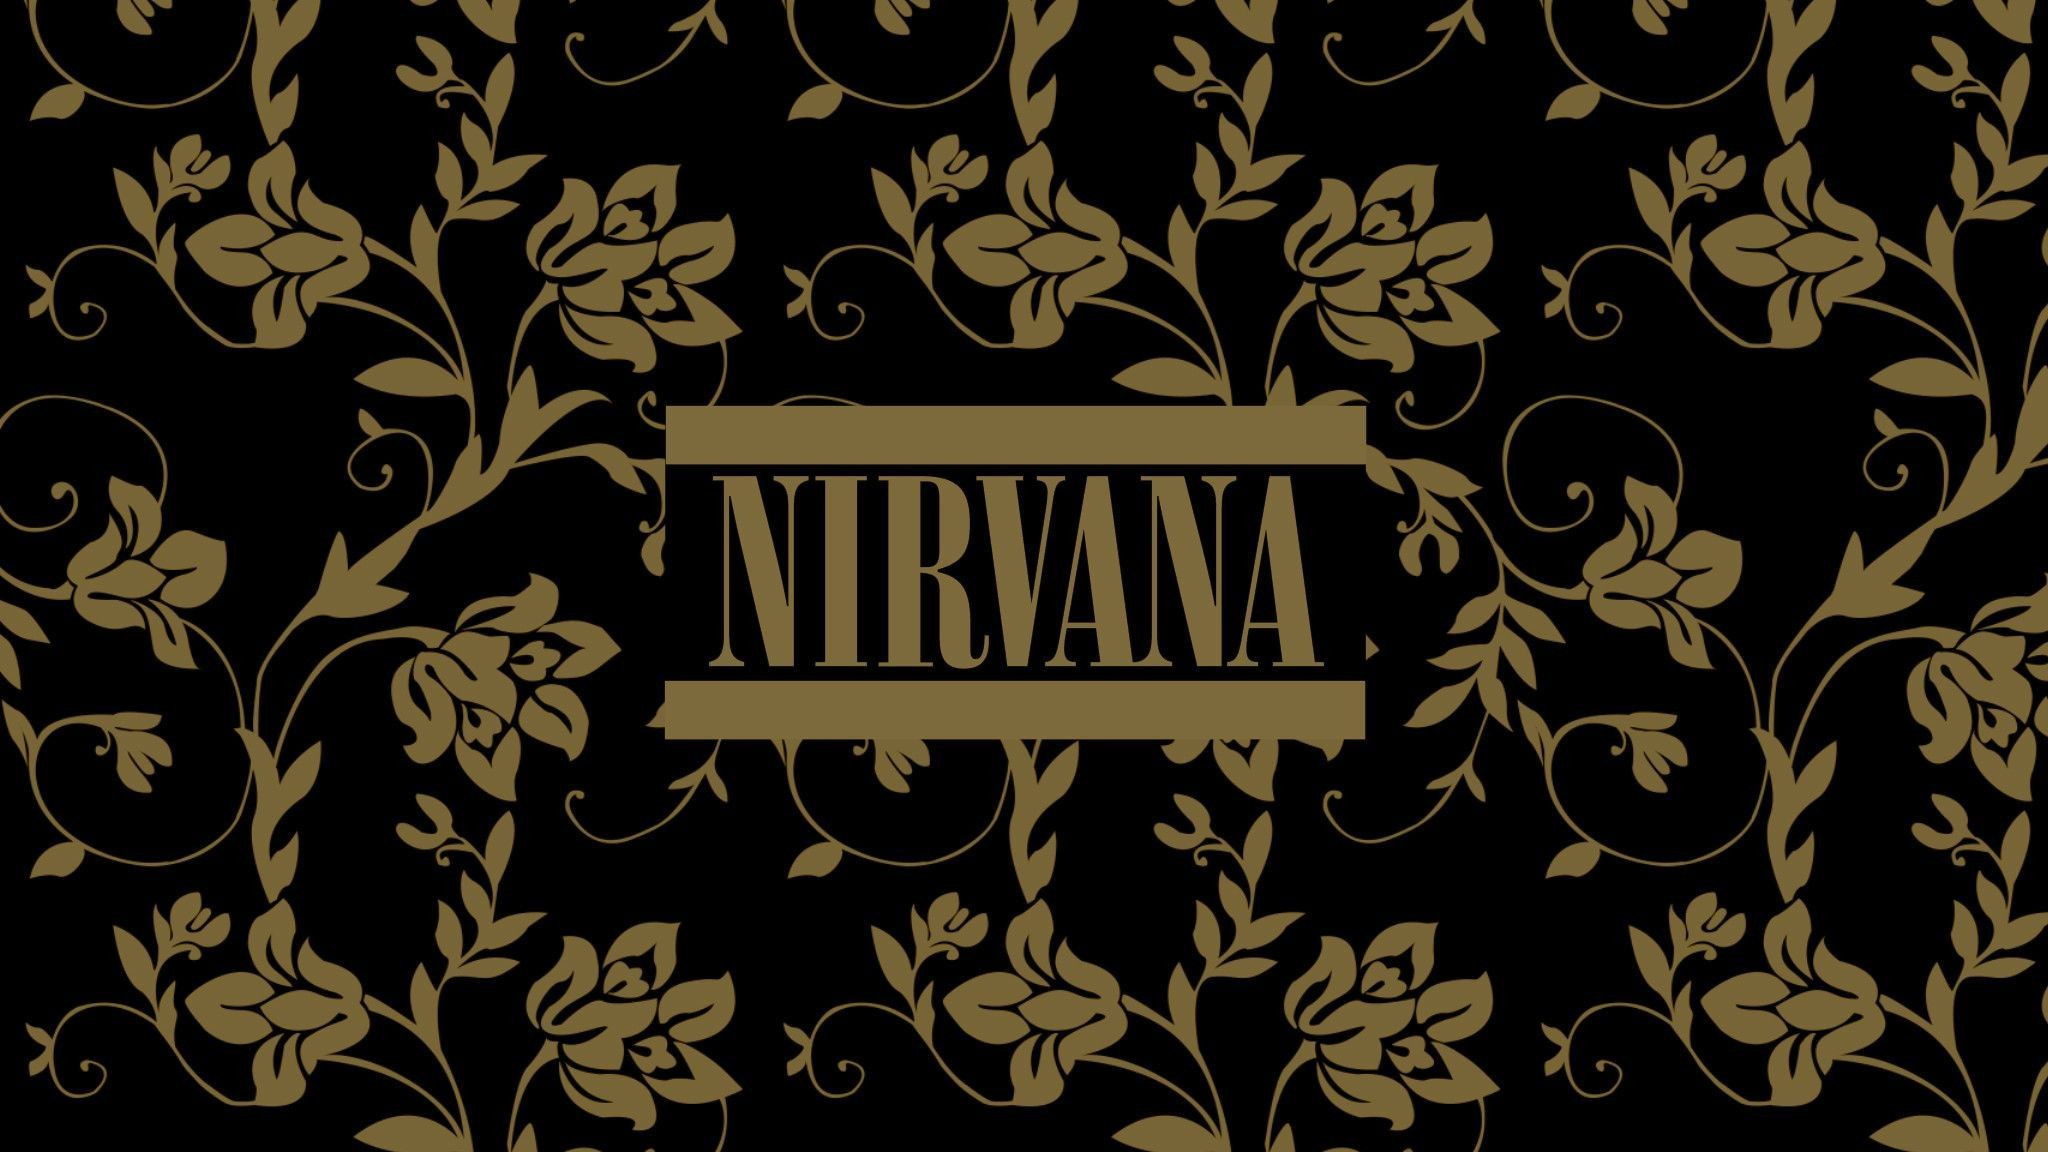 Nirvana Wallpapers Top Free Nirvana Backgrounds